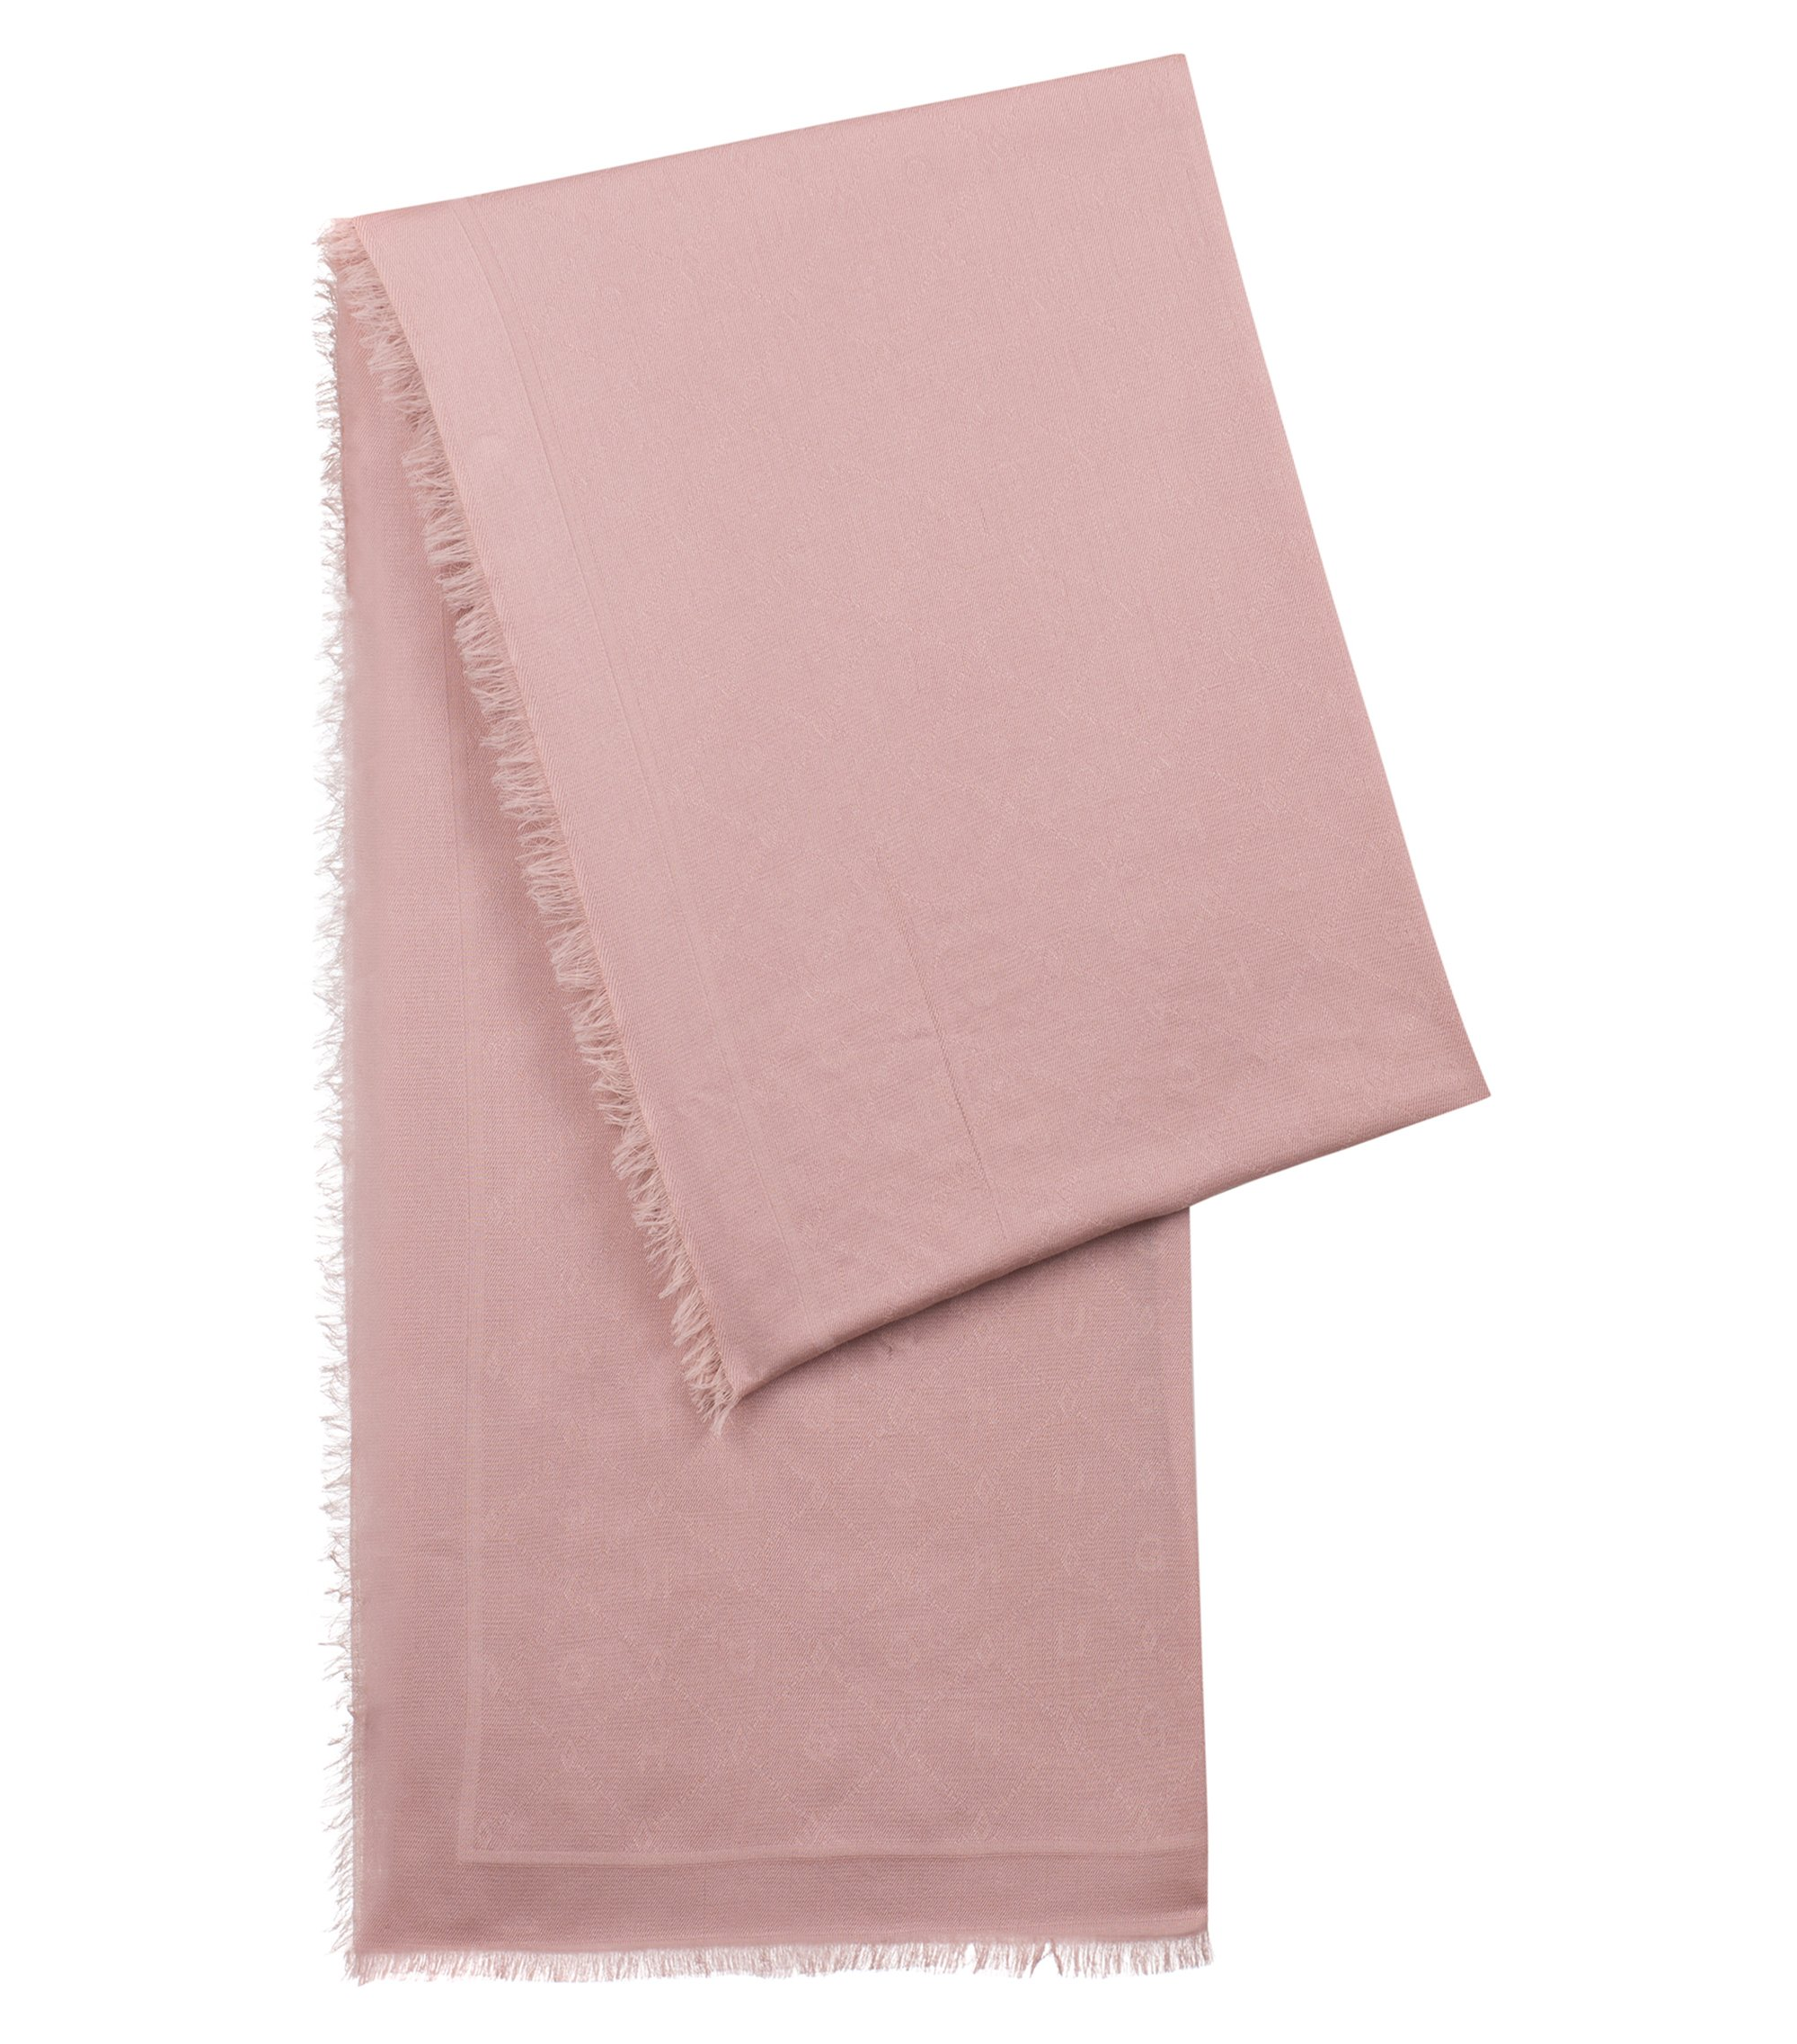 Jacquard scarf with tonal logo pattern, light pink